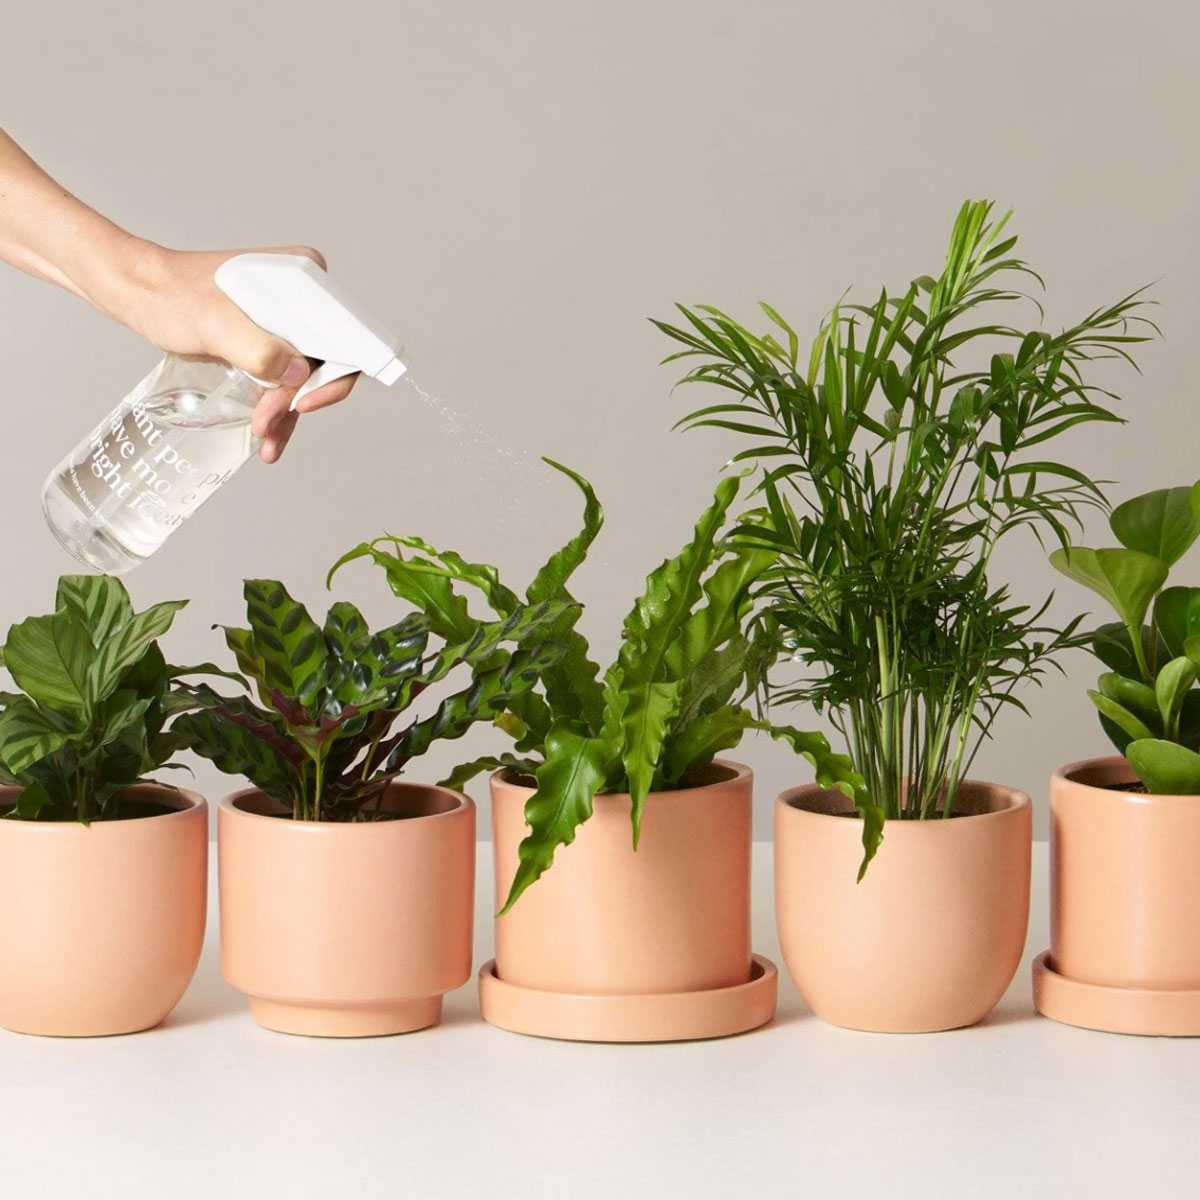 sill plant subscription